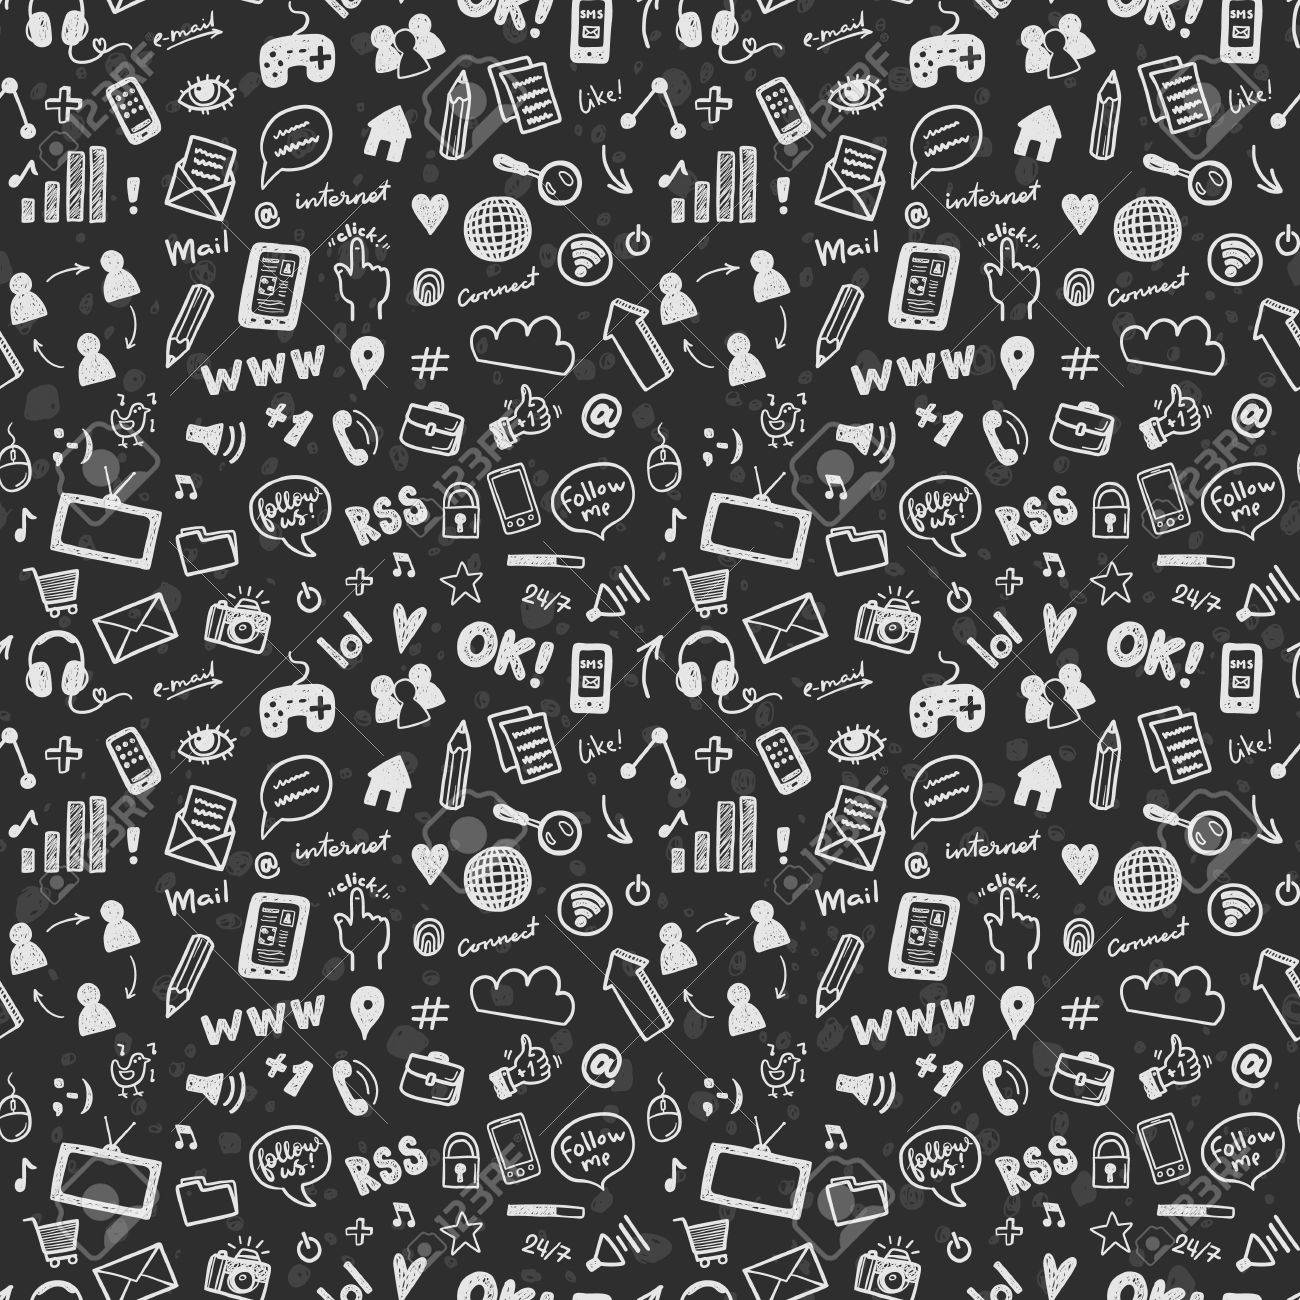 Social Media Sketch Vector Seamless Patern Doodle Chalk Drawing Background Stock